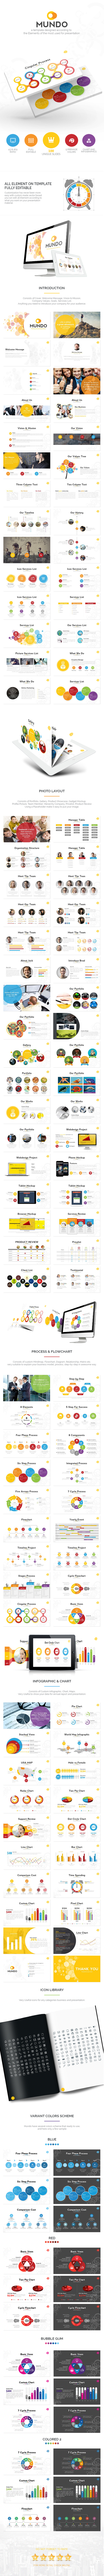 Mundo Keynote - Conquered Your Presentations - Abstract Keynote Templates